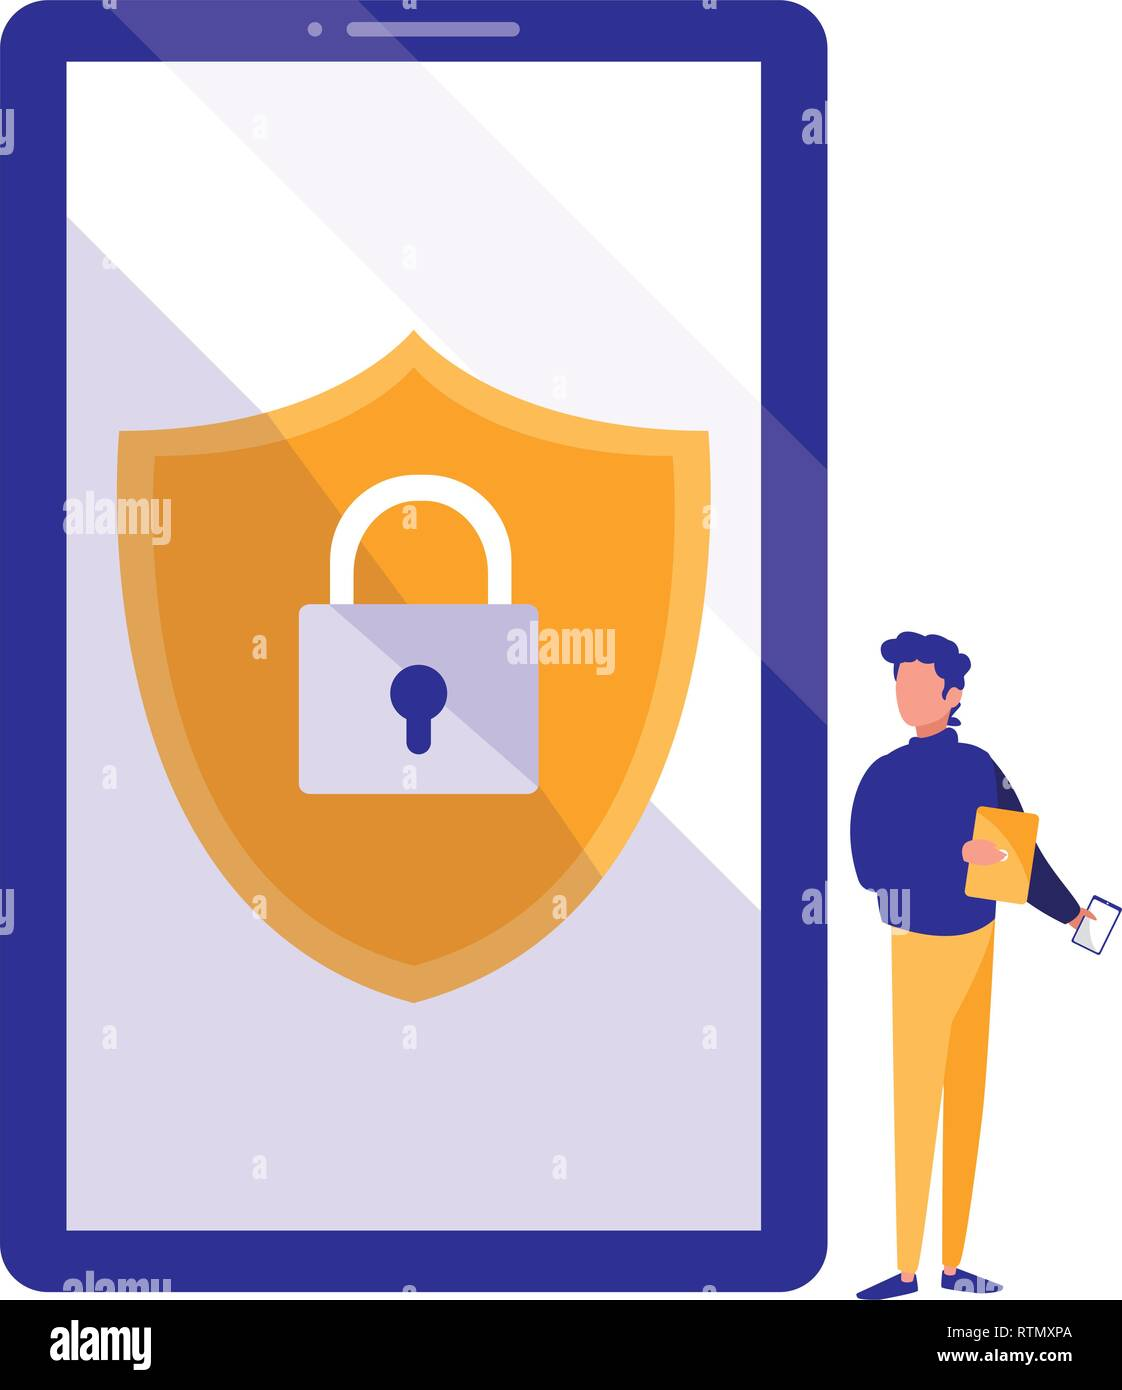 man using smartphone with shield and padlock vector illustration design - Stock Image